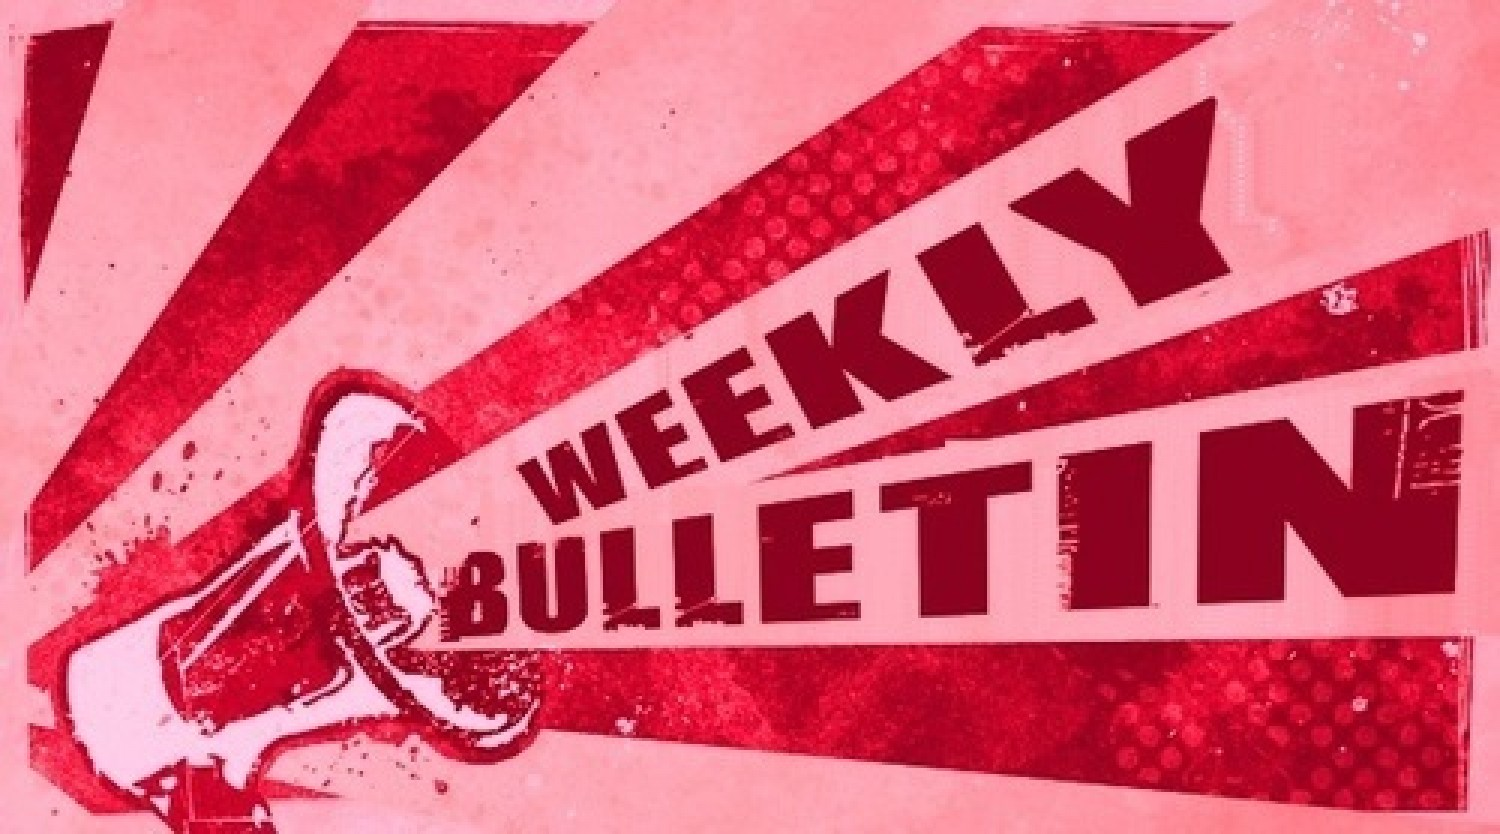 Weekly Bulletin March 22nd